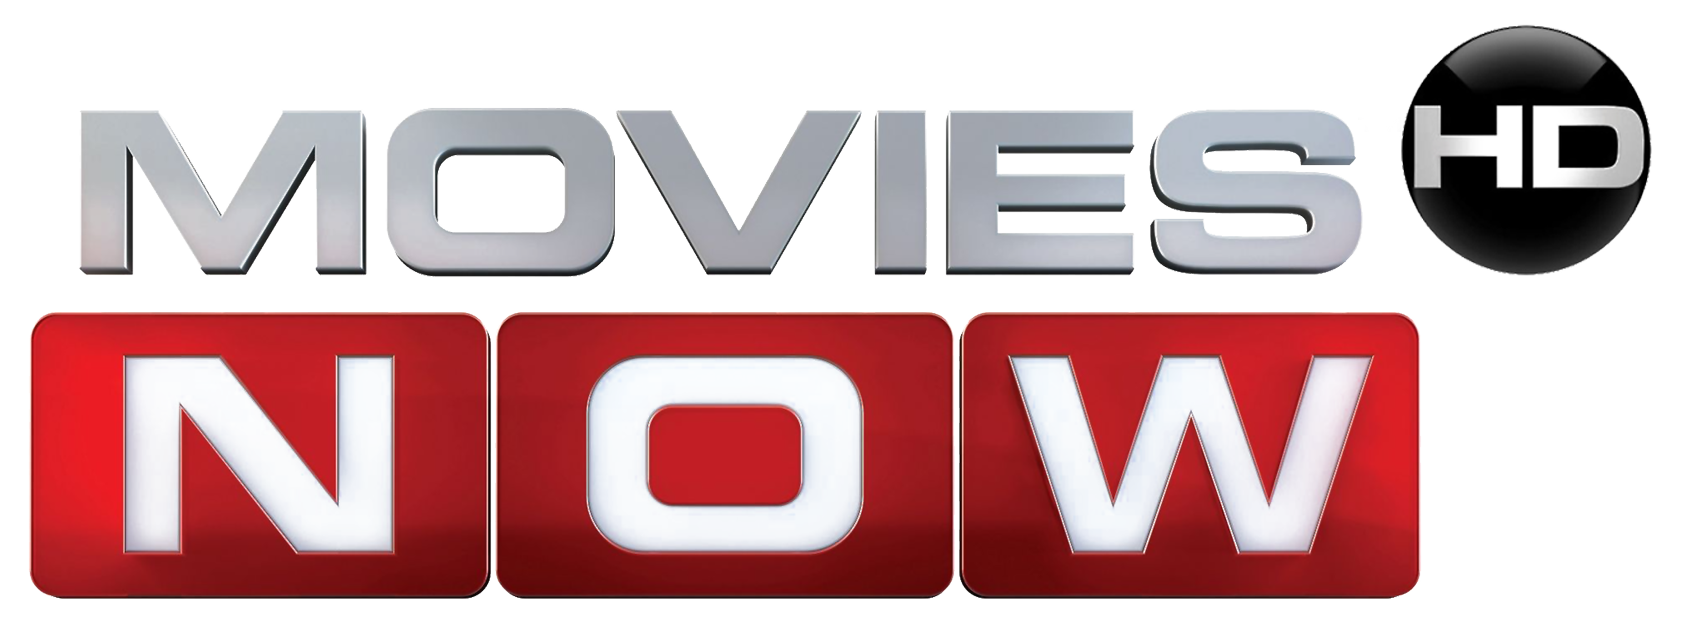 http://www.indigital.co.in/upload/ChannelLogo/ChannelLogo_636159414742778003. png. MOVIES NOW HD - Movie HD PNG